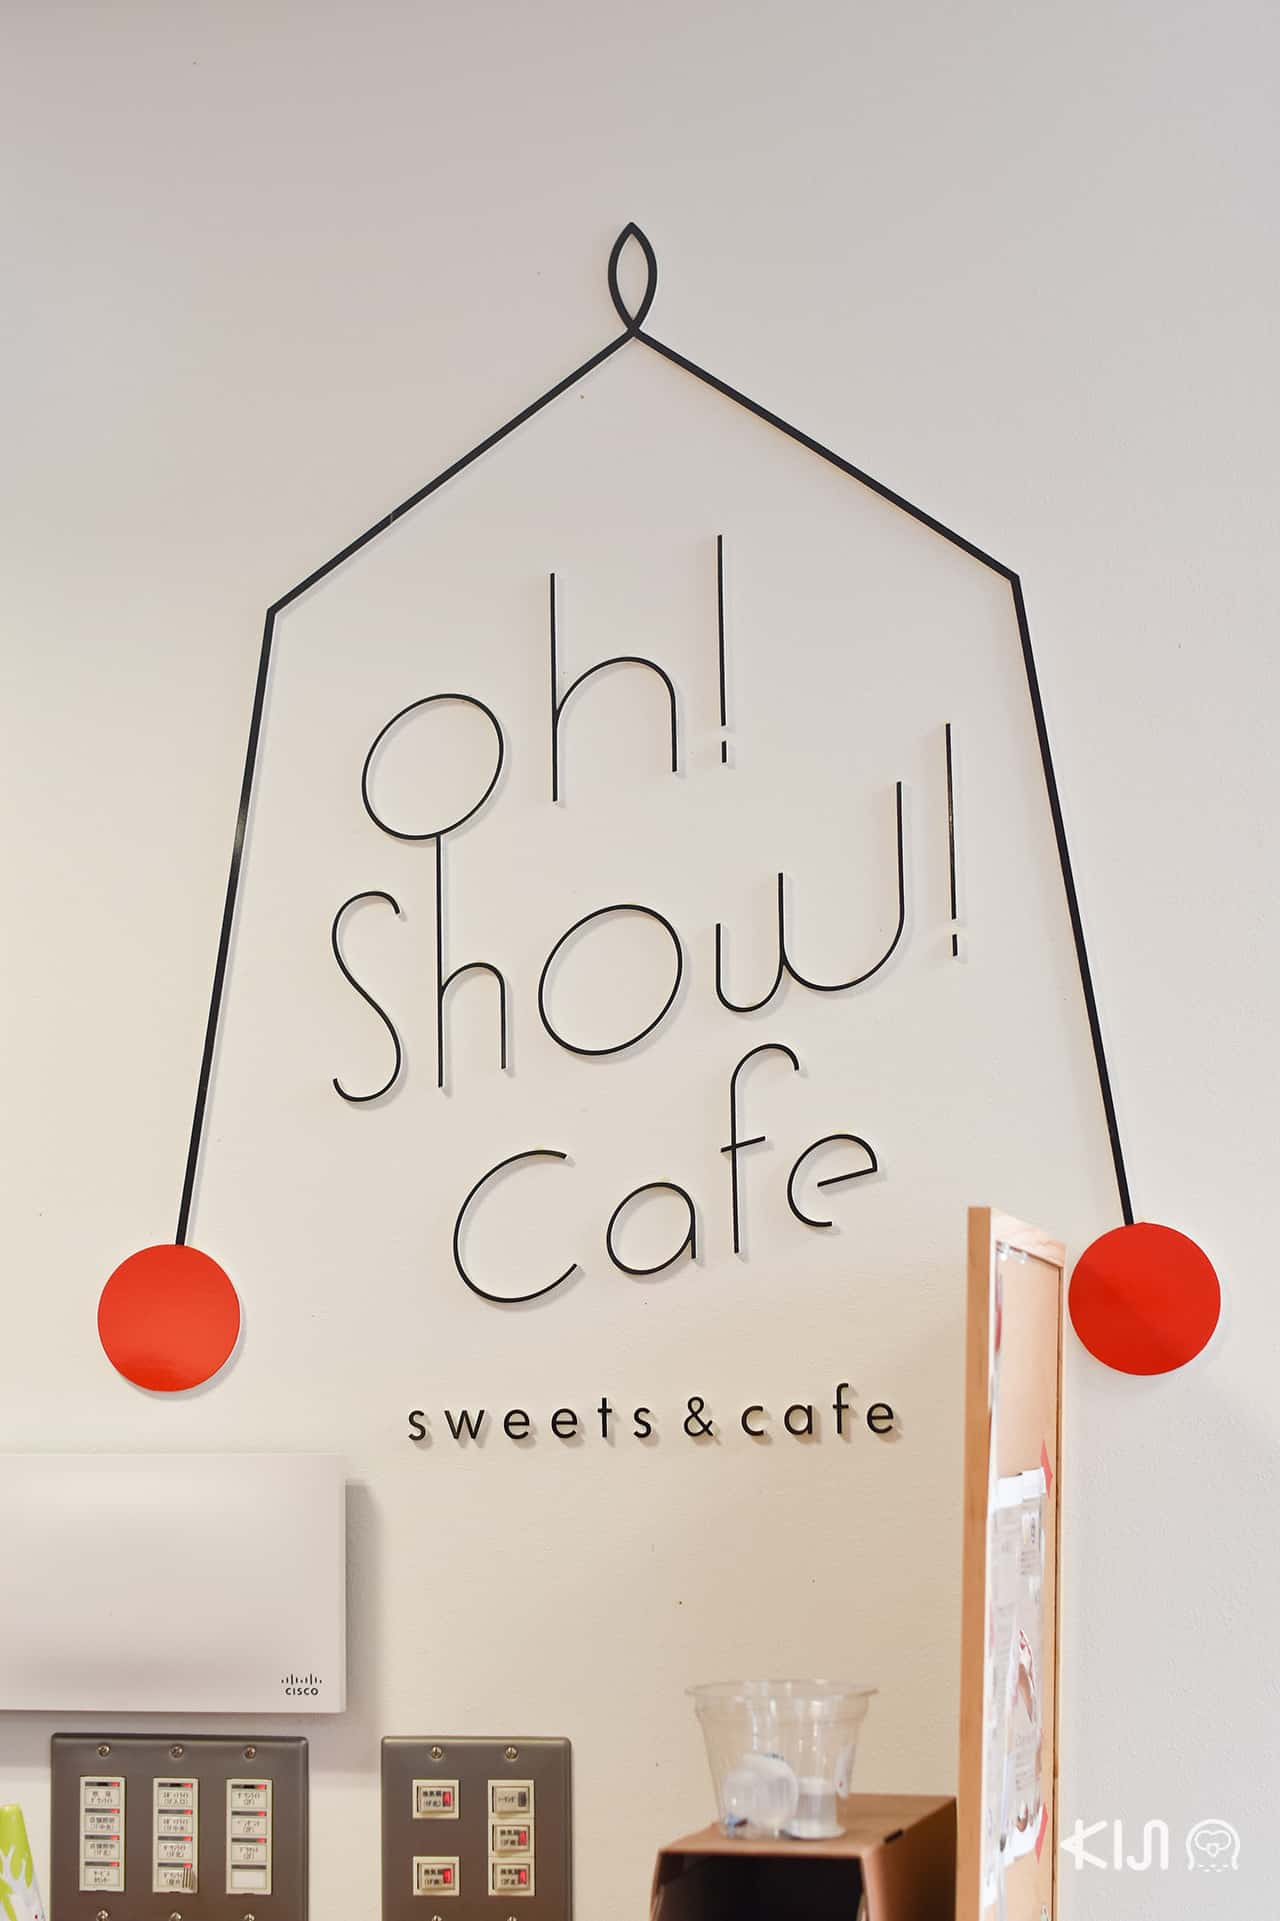 Oh! Show! Cafe